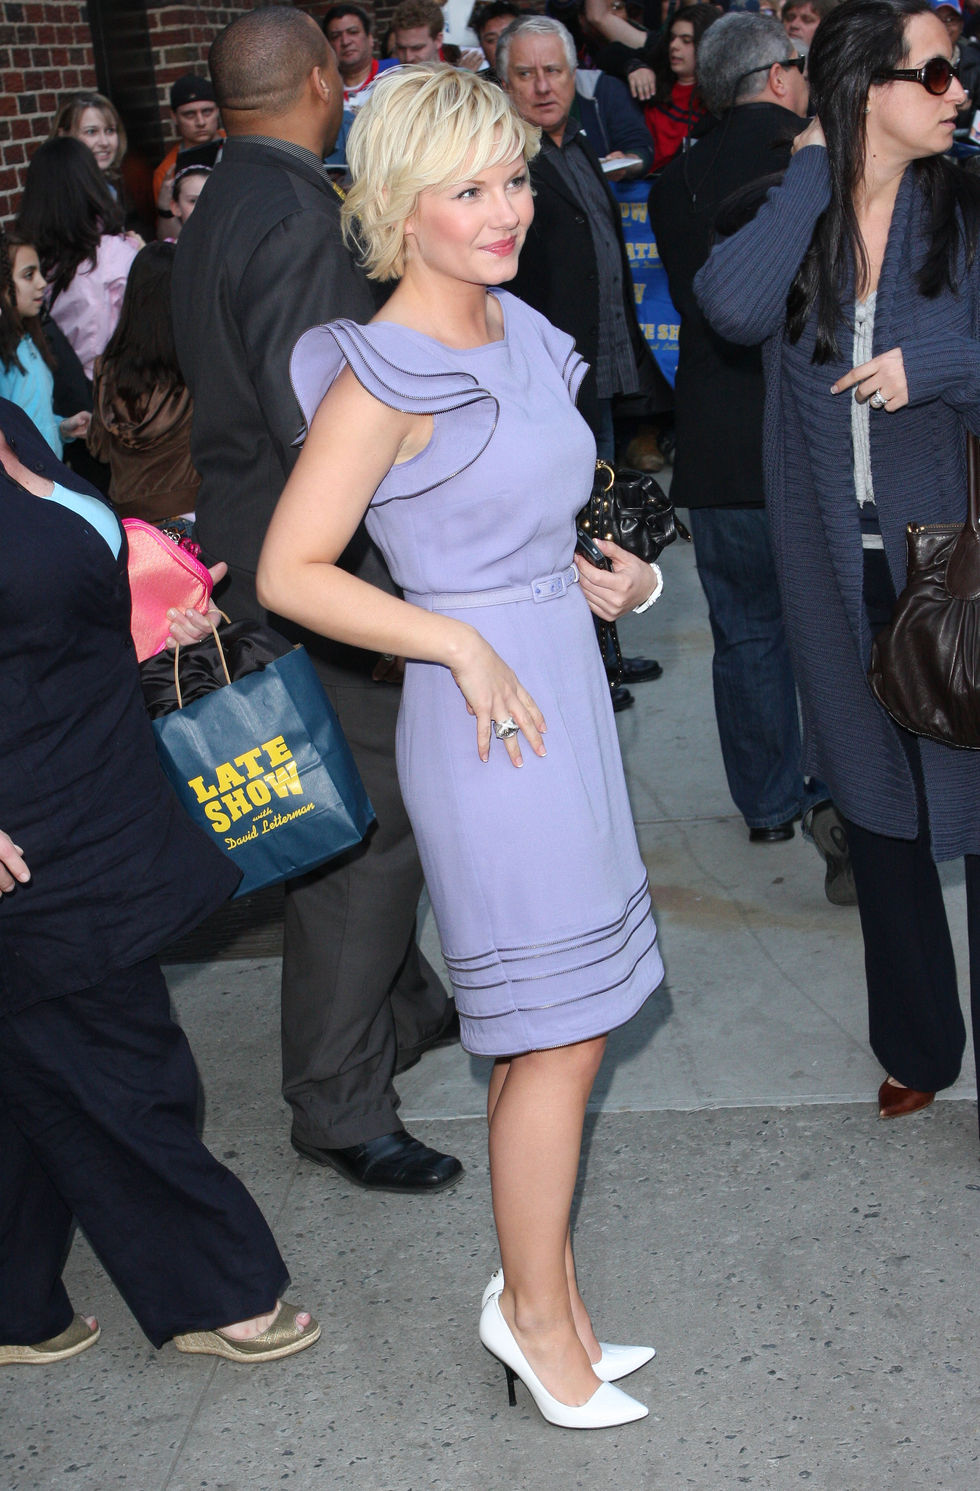 elisha-cuthbert-visits-the-late-show-with-david-letterman-in-new-york-01